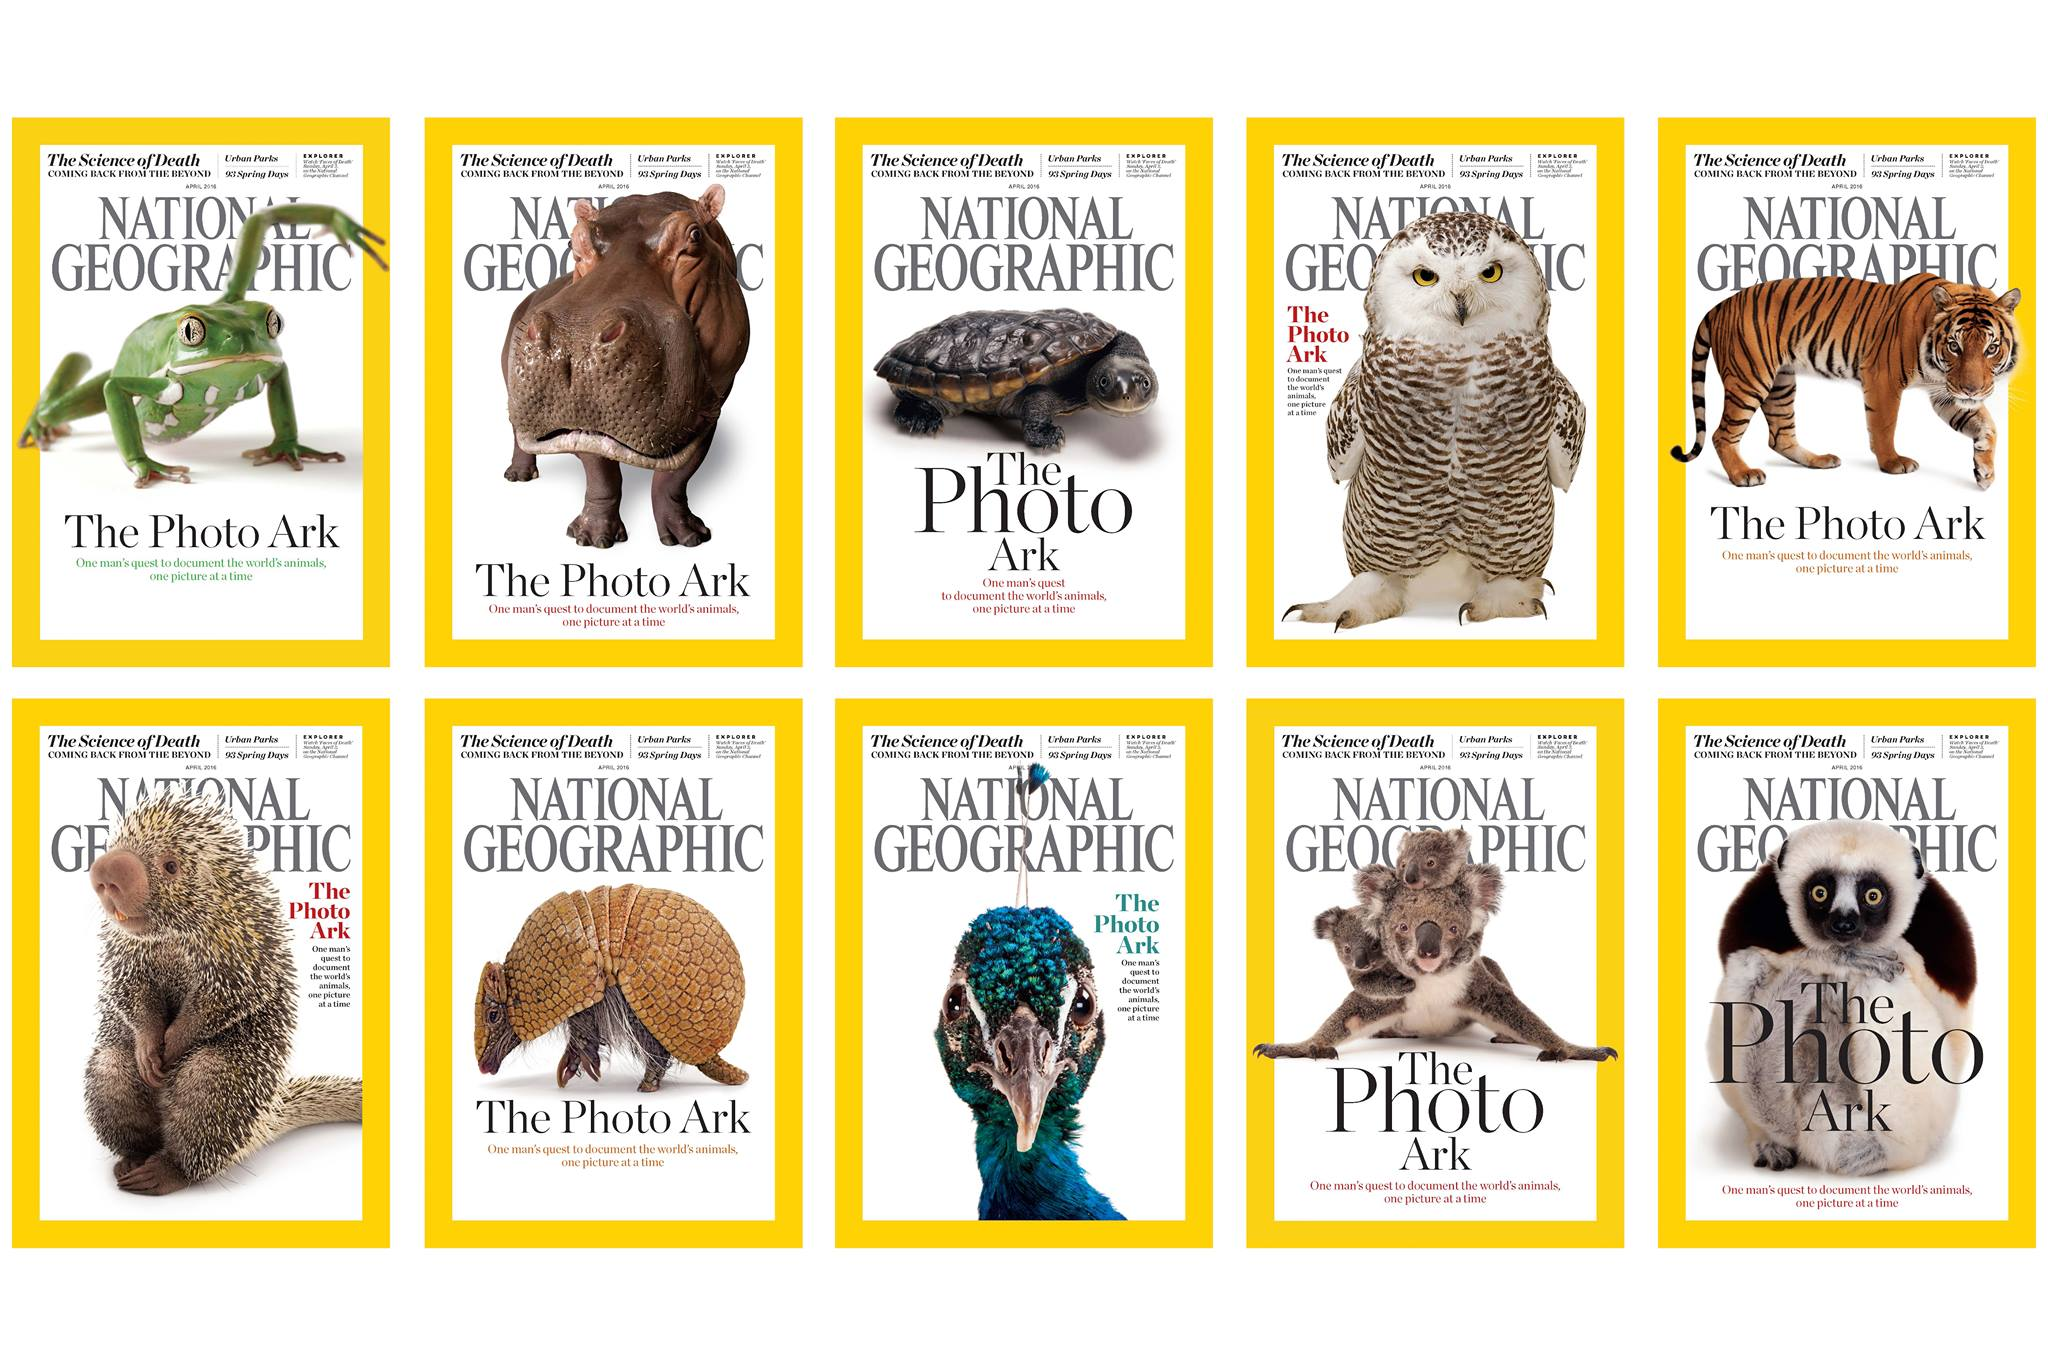 National Geographic  Photo Ark covers. ©2017 Joel Sartore